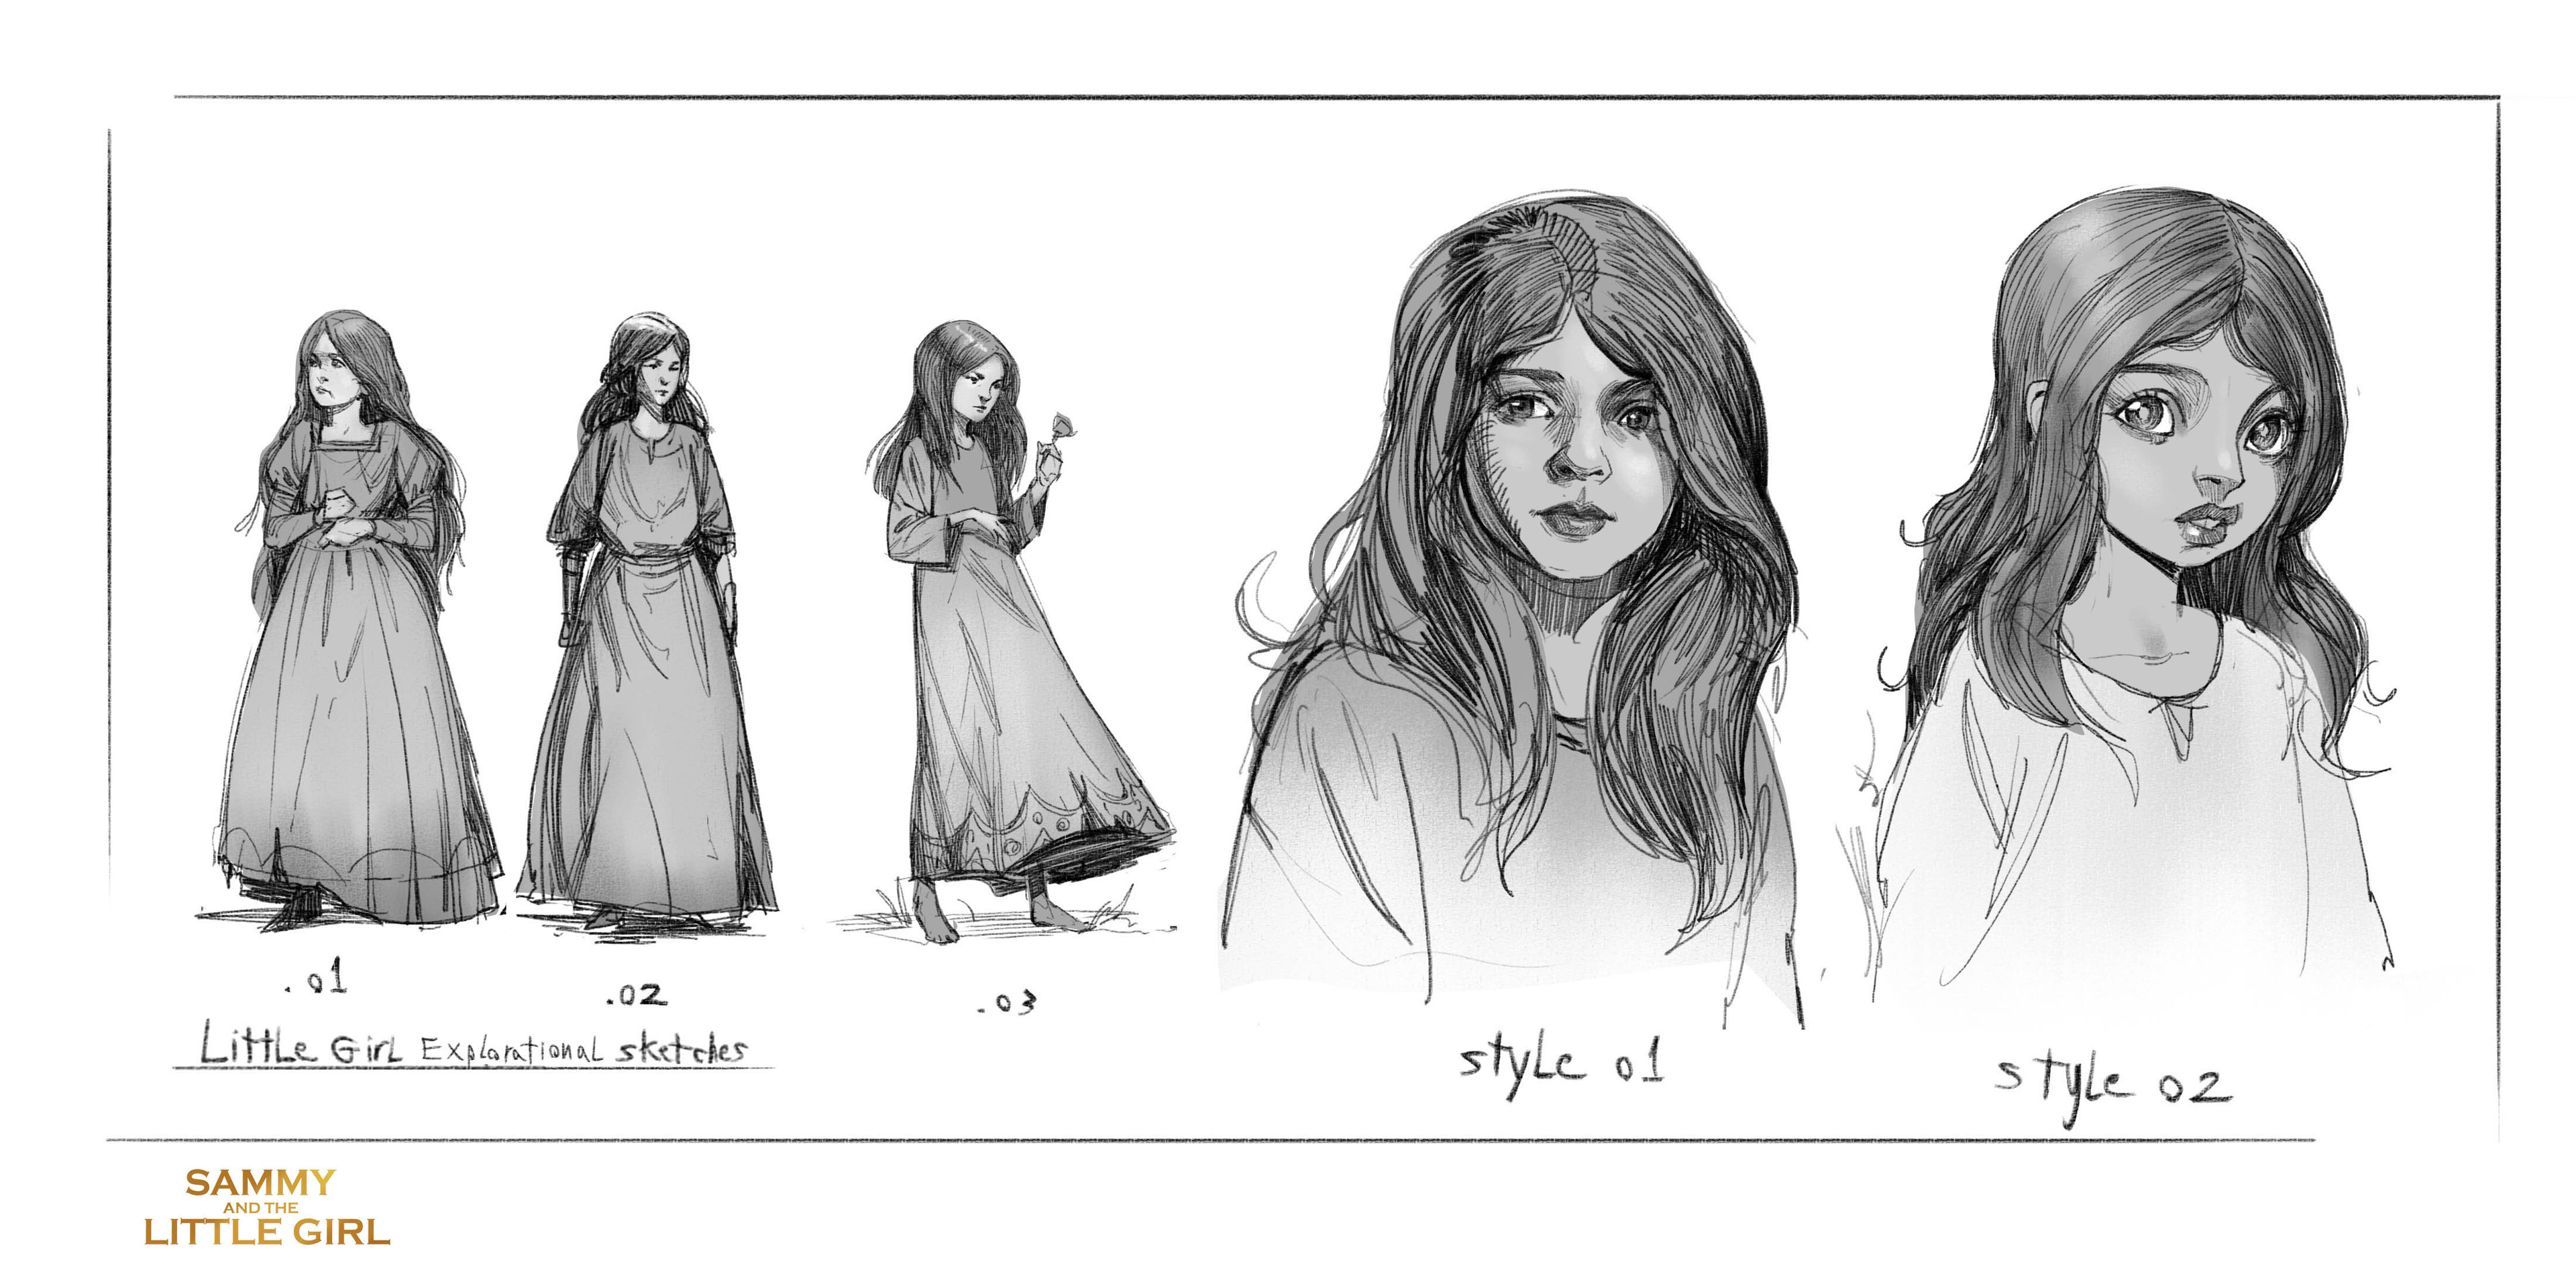 The Little Girl_ Explorations.